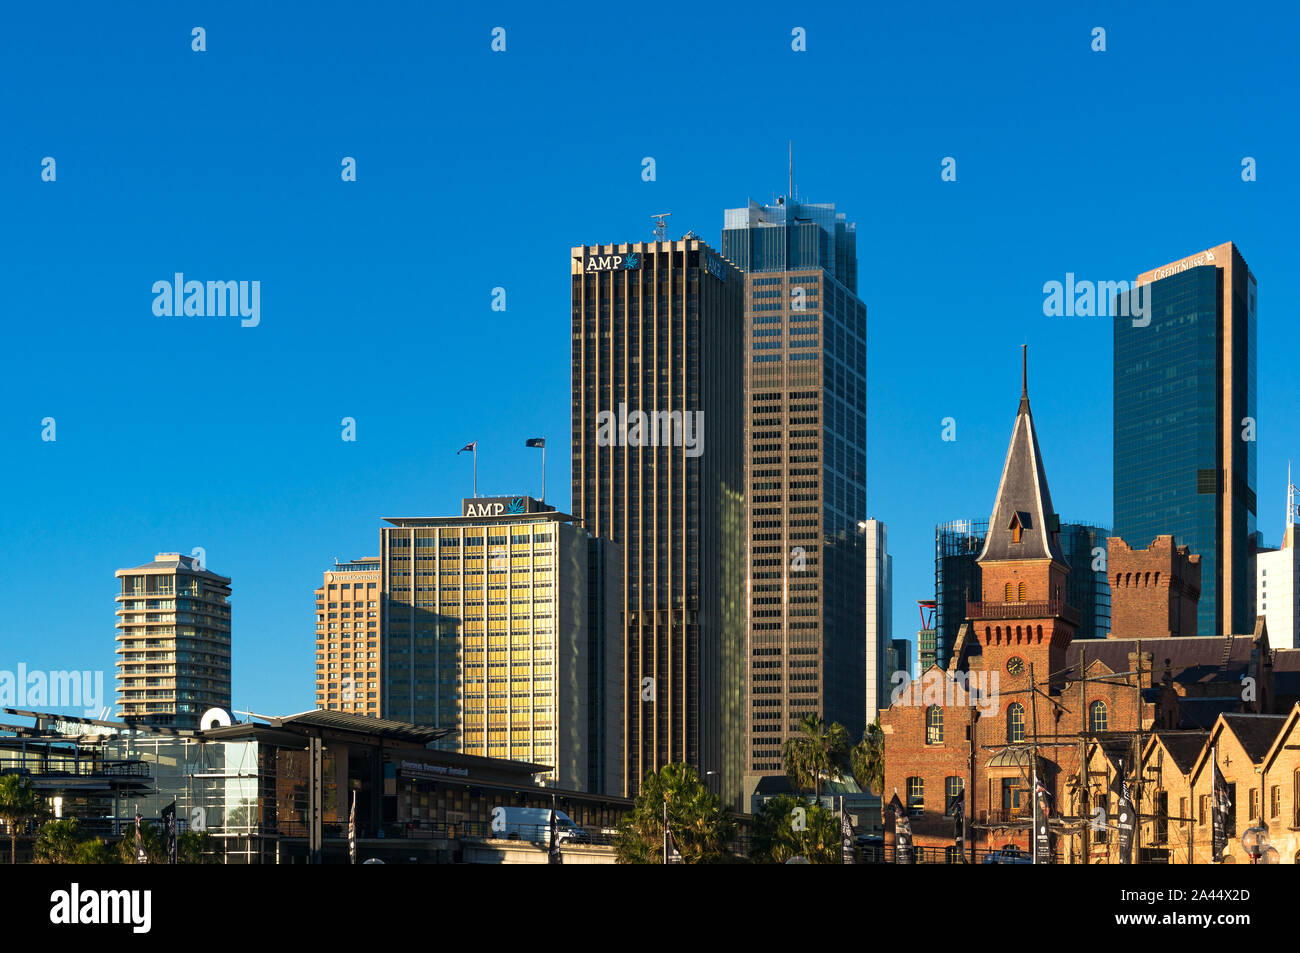 Sydney, Australia - Jul 23, 2016: Sydney Central Business District skyline with AMP building and Australasian Steam Navigation Co. building facade Stock Photo